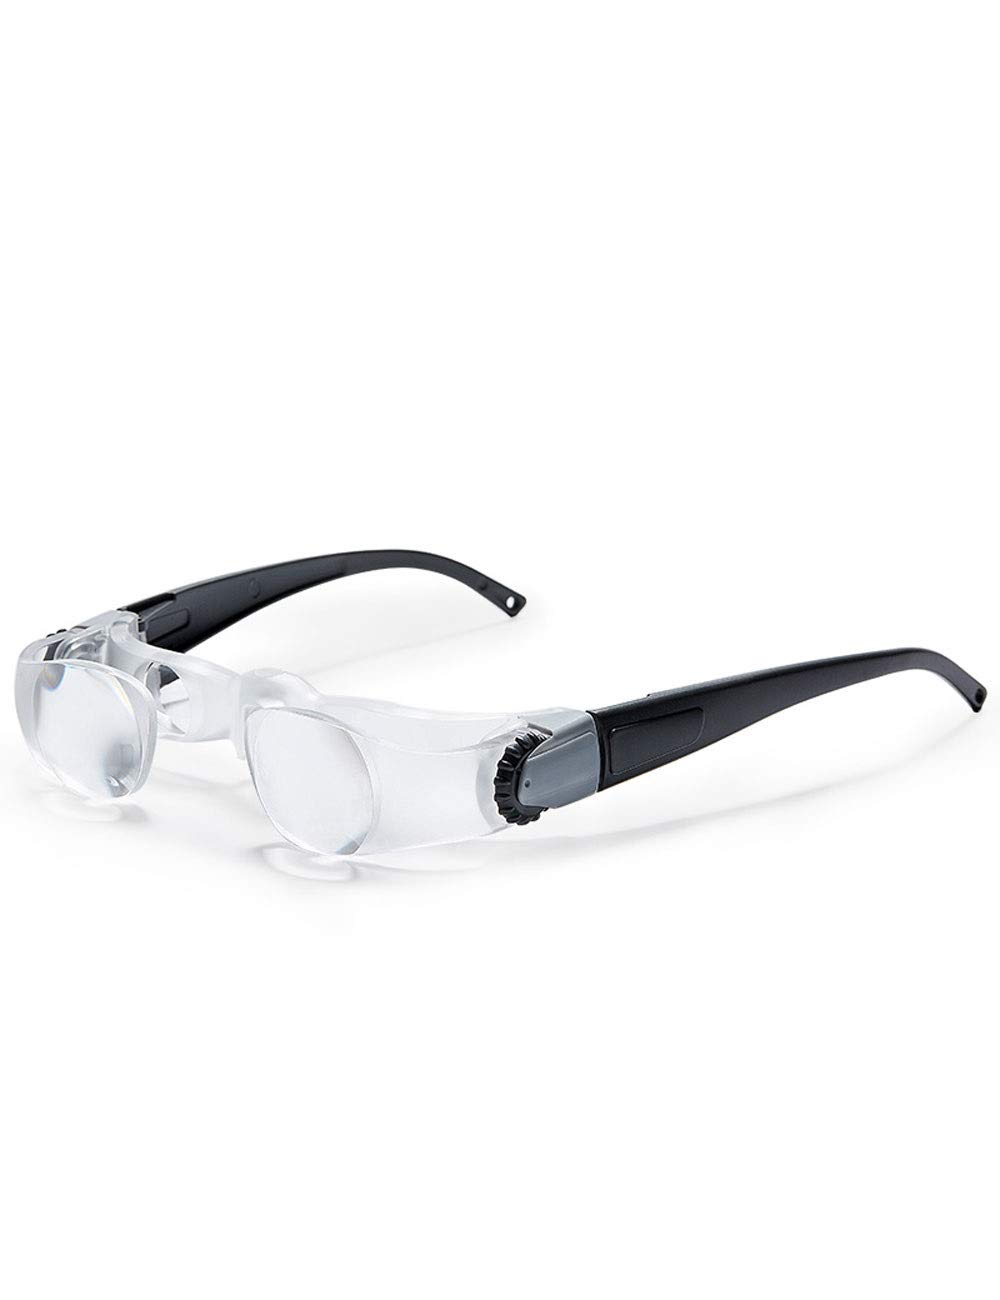 GZRR Magnifier Head-Mounted High-Definition Glasses-Type Portable Magnifying Glass, Reading The Elderly Computer Repair Watch Stamp Identification Tool can Adjust The Zoom Upgraded Version